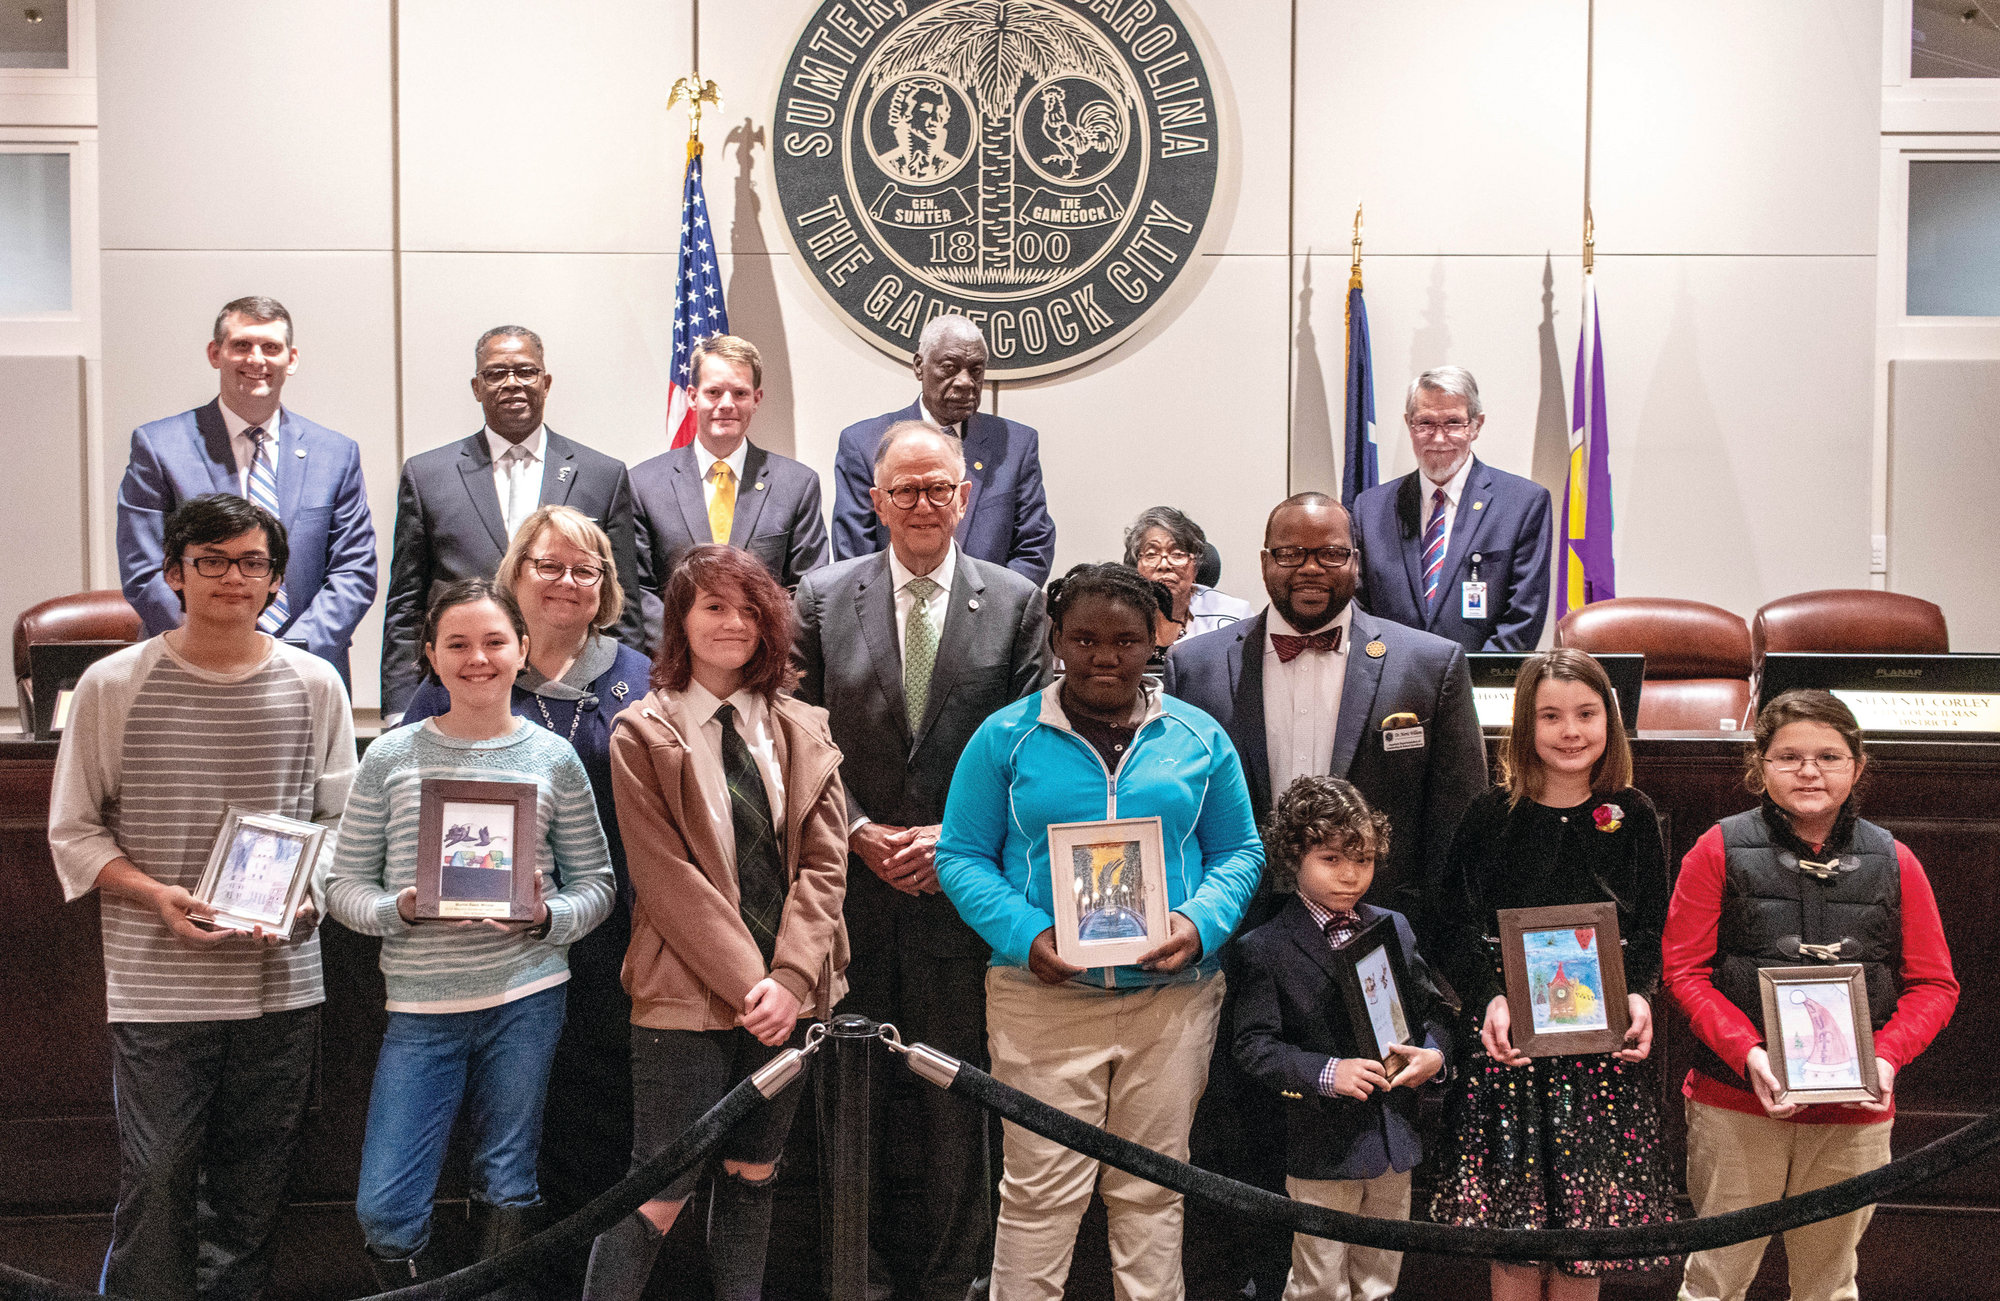 PHOTOS PROVIDEDPhotographed are several of the winners in the City of Sumter Mayor's Christmas Card Contest, Aiden Tolson, Abbigail Grossman, Brianna Riley, Ebony Osborne, McKayla Mouradjian, Murrin Reed, Benjamin Morrow and Kali Katz; Sumter School District Interim Superintendent Debbie Hamm; Mayor Joe McElveen; Assistant Superintendent for Leadership and School Excellence Norris Williams; councilman Steve Corley; councilman Ione Dwyer; councilman Thomas Lowery; councilman Colin Davis;